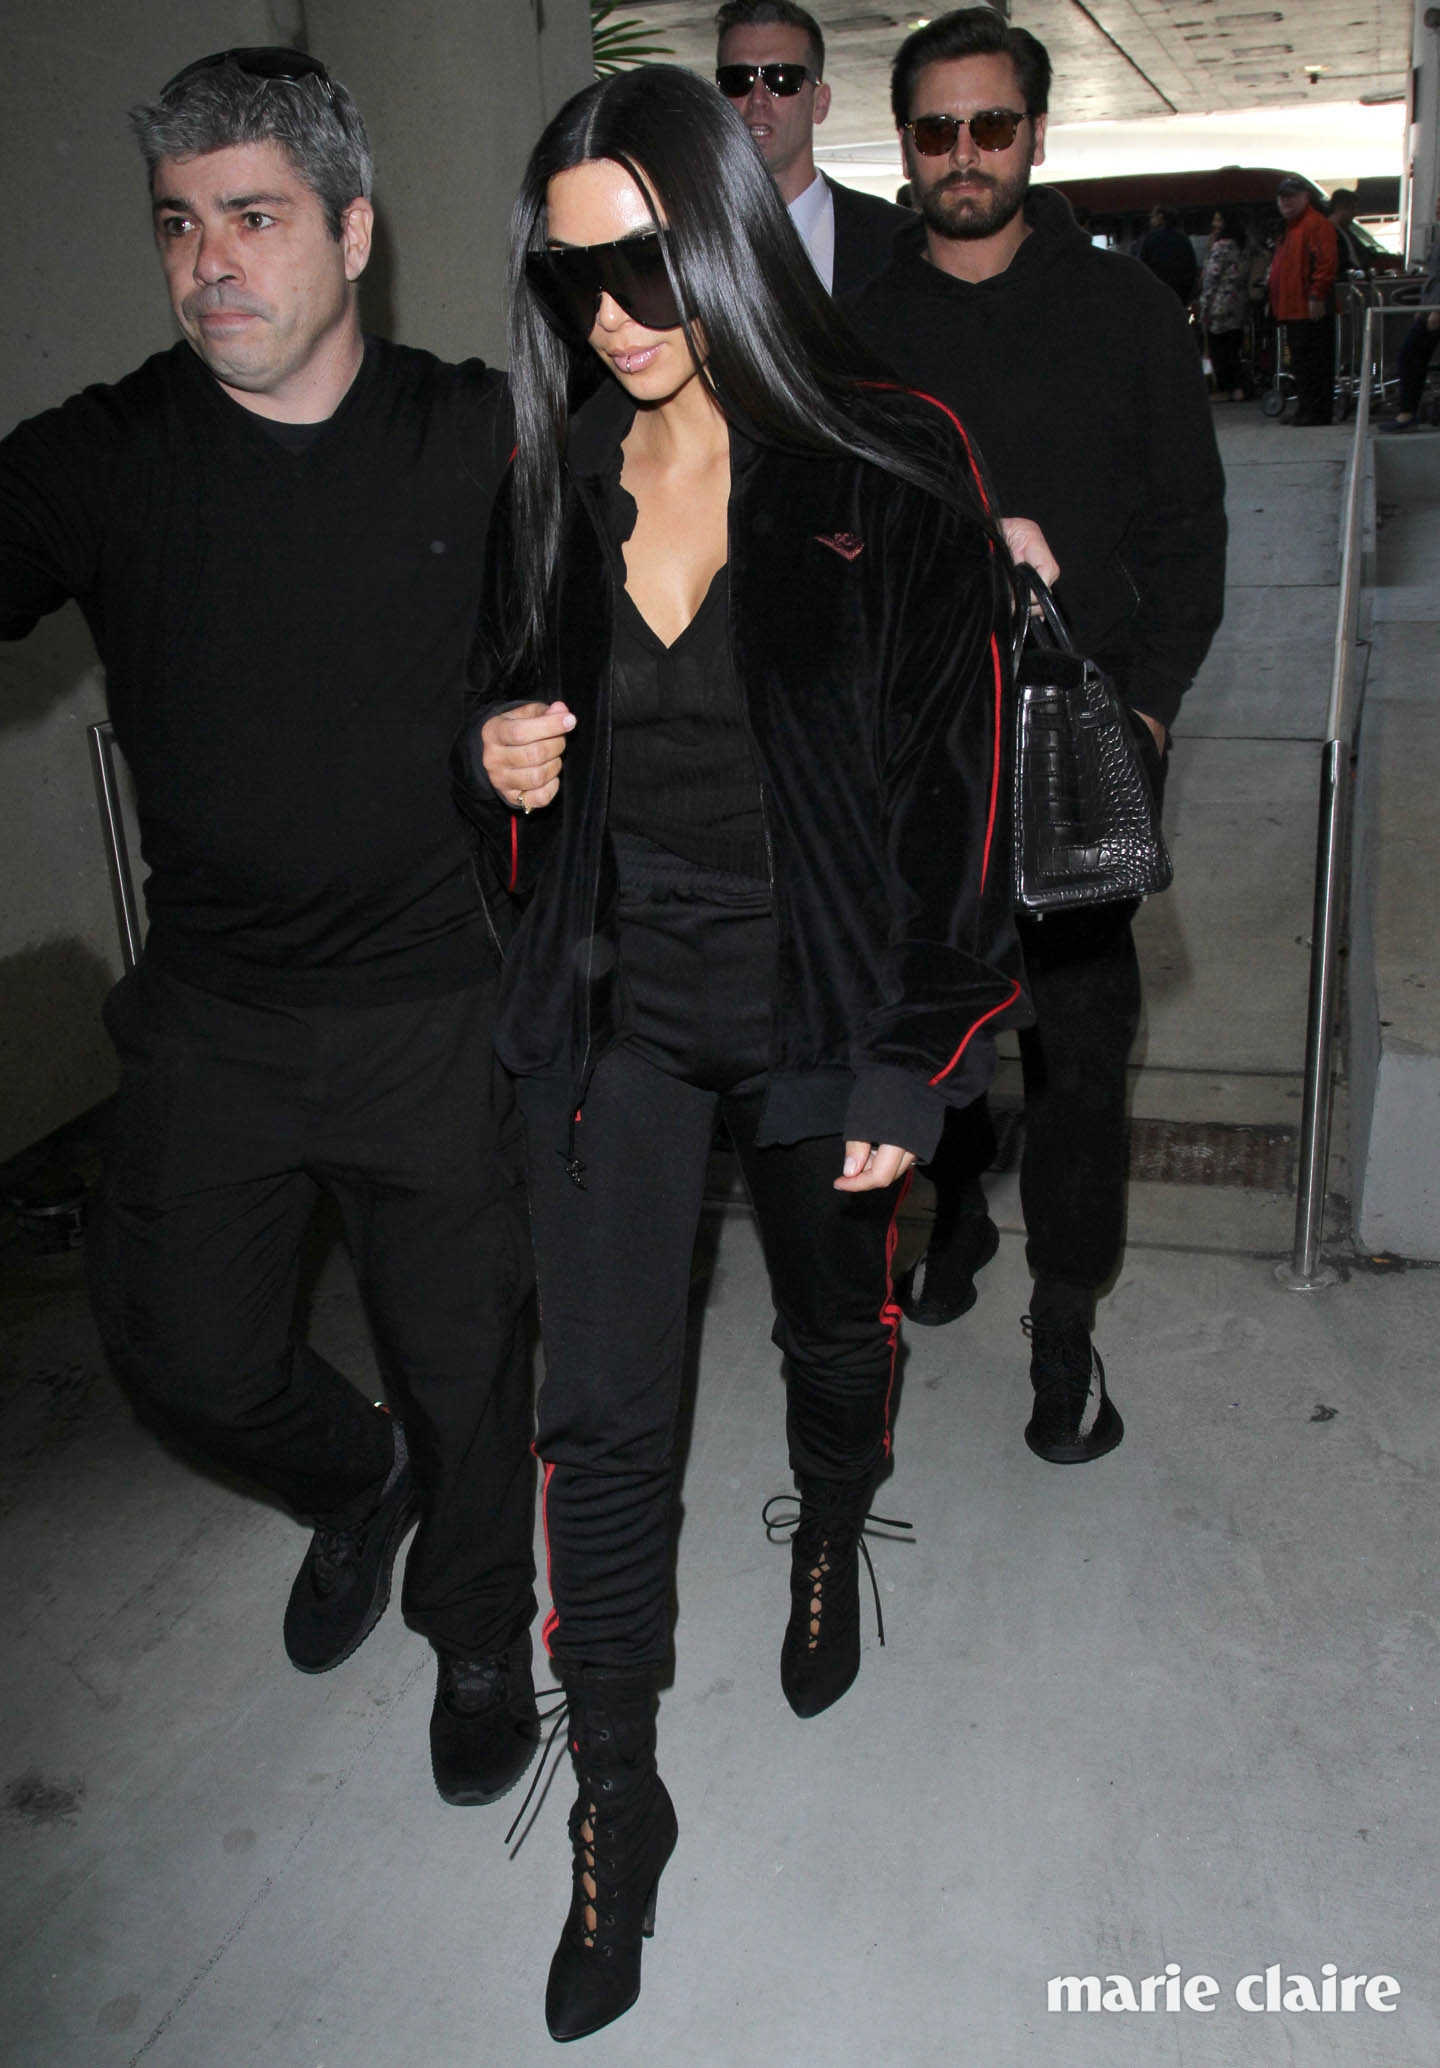 Kim Kardashian sports a lip ring as she and Scott Disick arrive at Los Angeles International (LAX) Airport to catch a flight to Dubai Featuring: Kim Kardashian, Scott Disick Where: Los Angeles, California, United States When: 11 Jan 2017 Credit: WENN.com